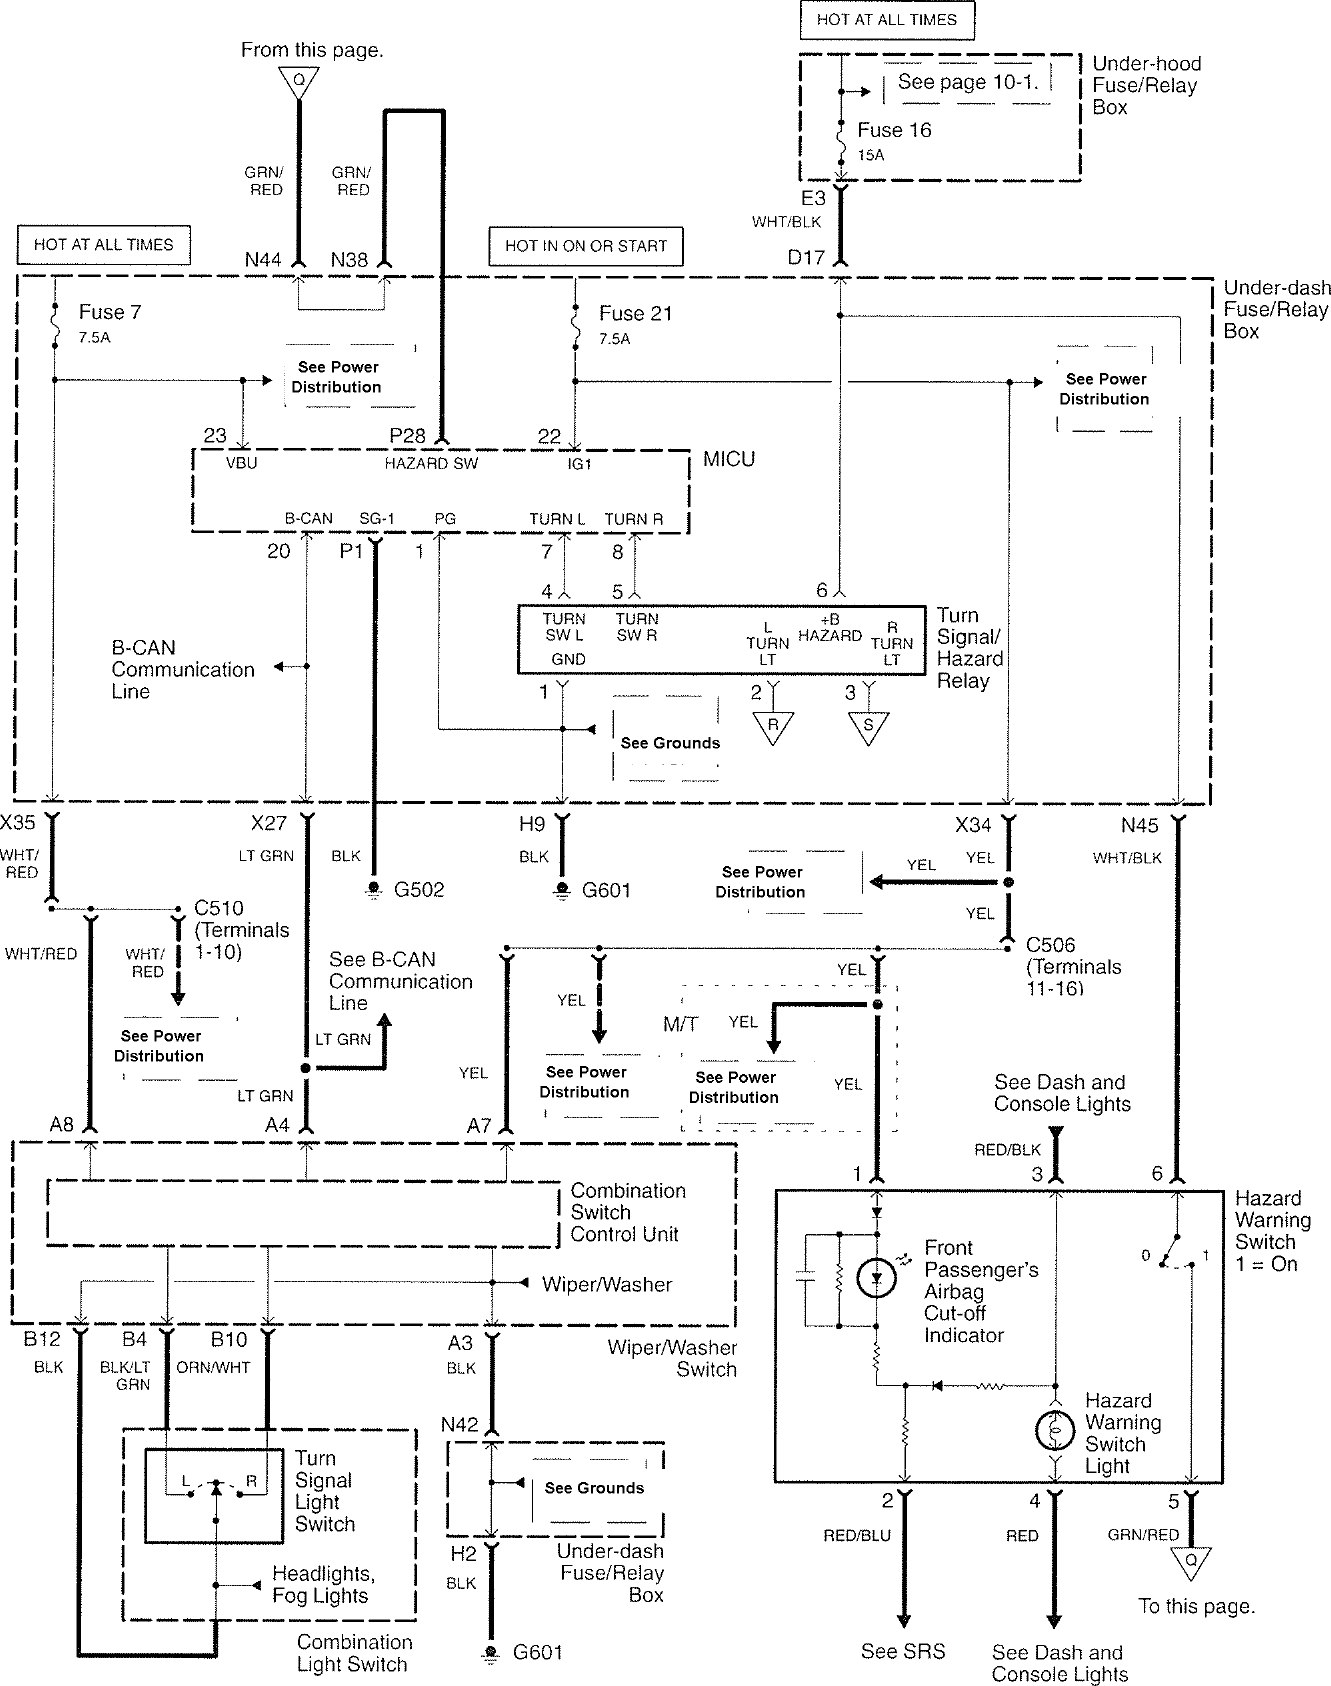 acura tl (2007 2008) wiring diagrams hazard lamp carknowledge 2004 Acura Tl Wiring Diagram acura tl (2007 \u2013 2008) \u2013 wiring diagrams \u2013 hazard lamp